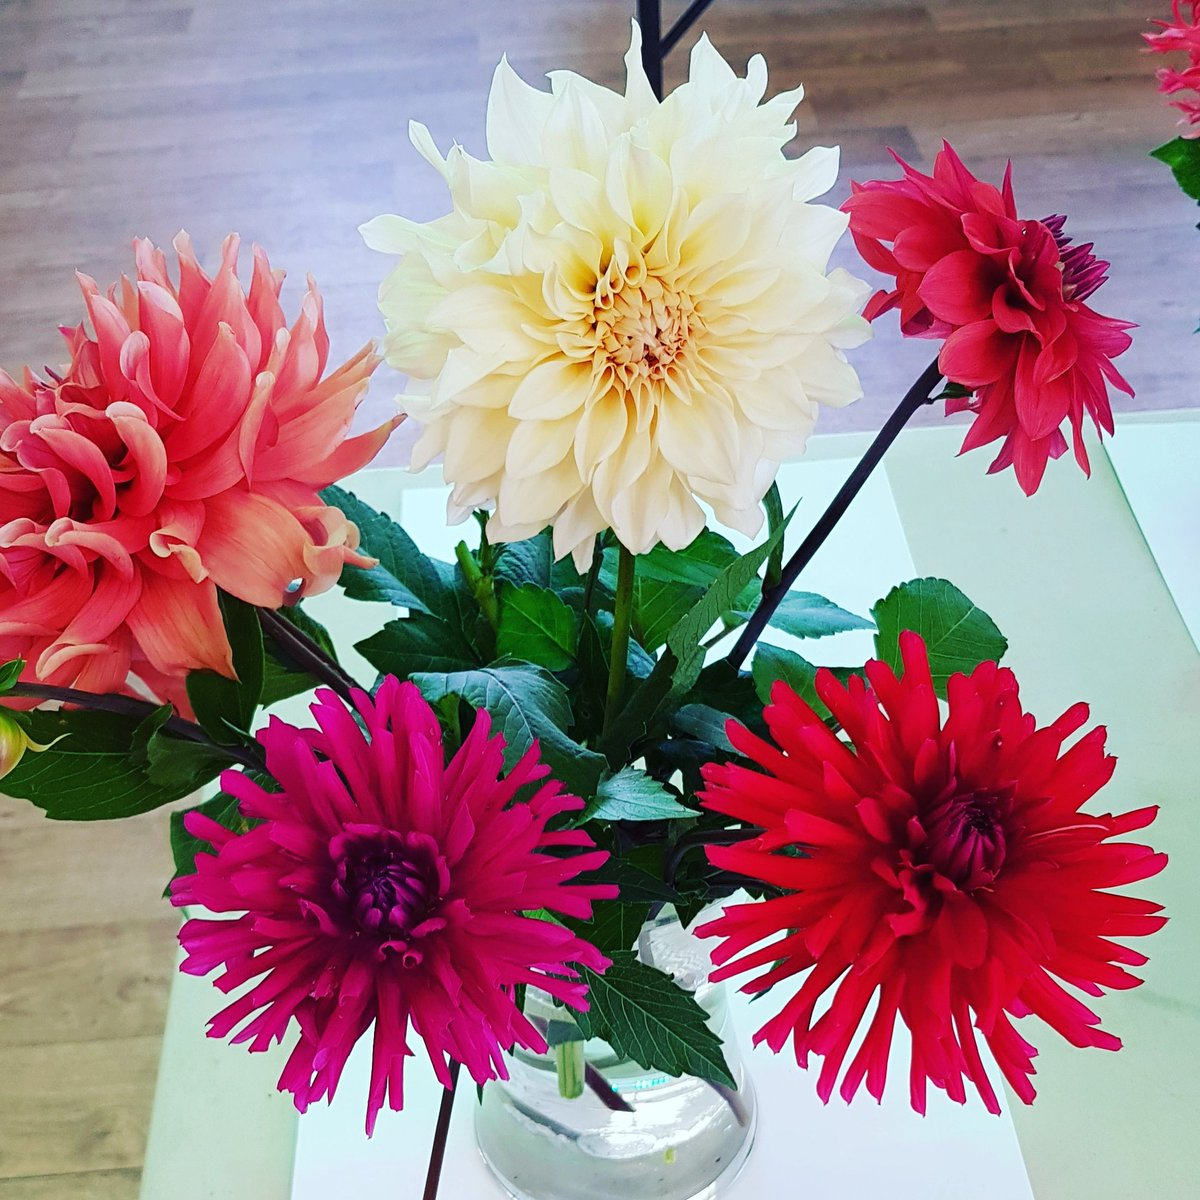 Dahlias hashtag on twitter dahlias on the show bench ready to be judged fingerscrossedpicittersnjhkua1gd izmirmasajfo